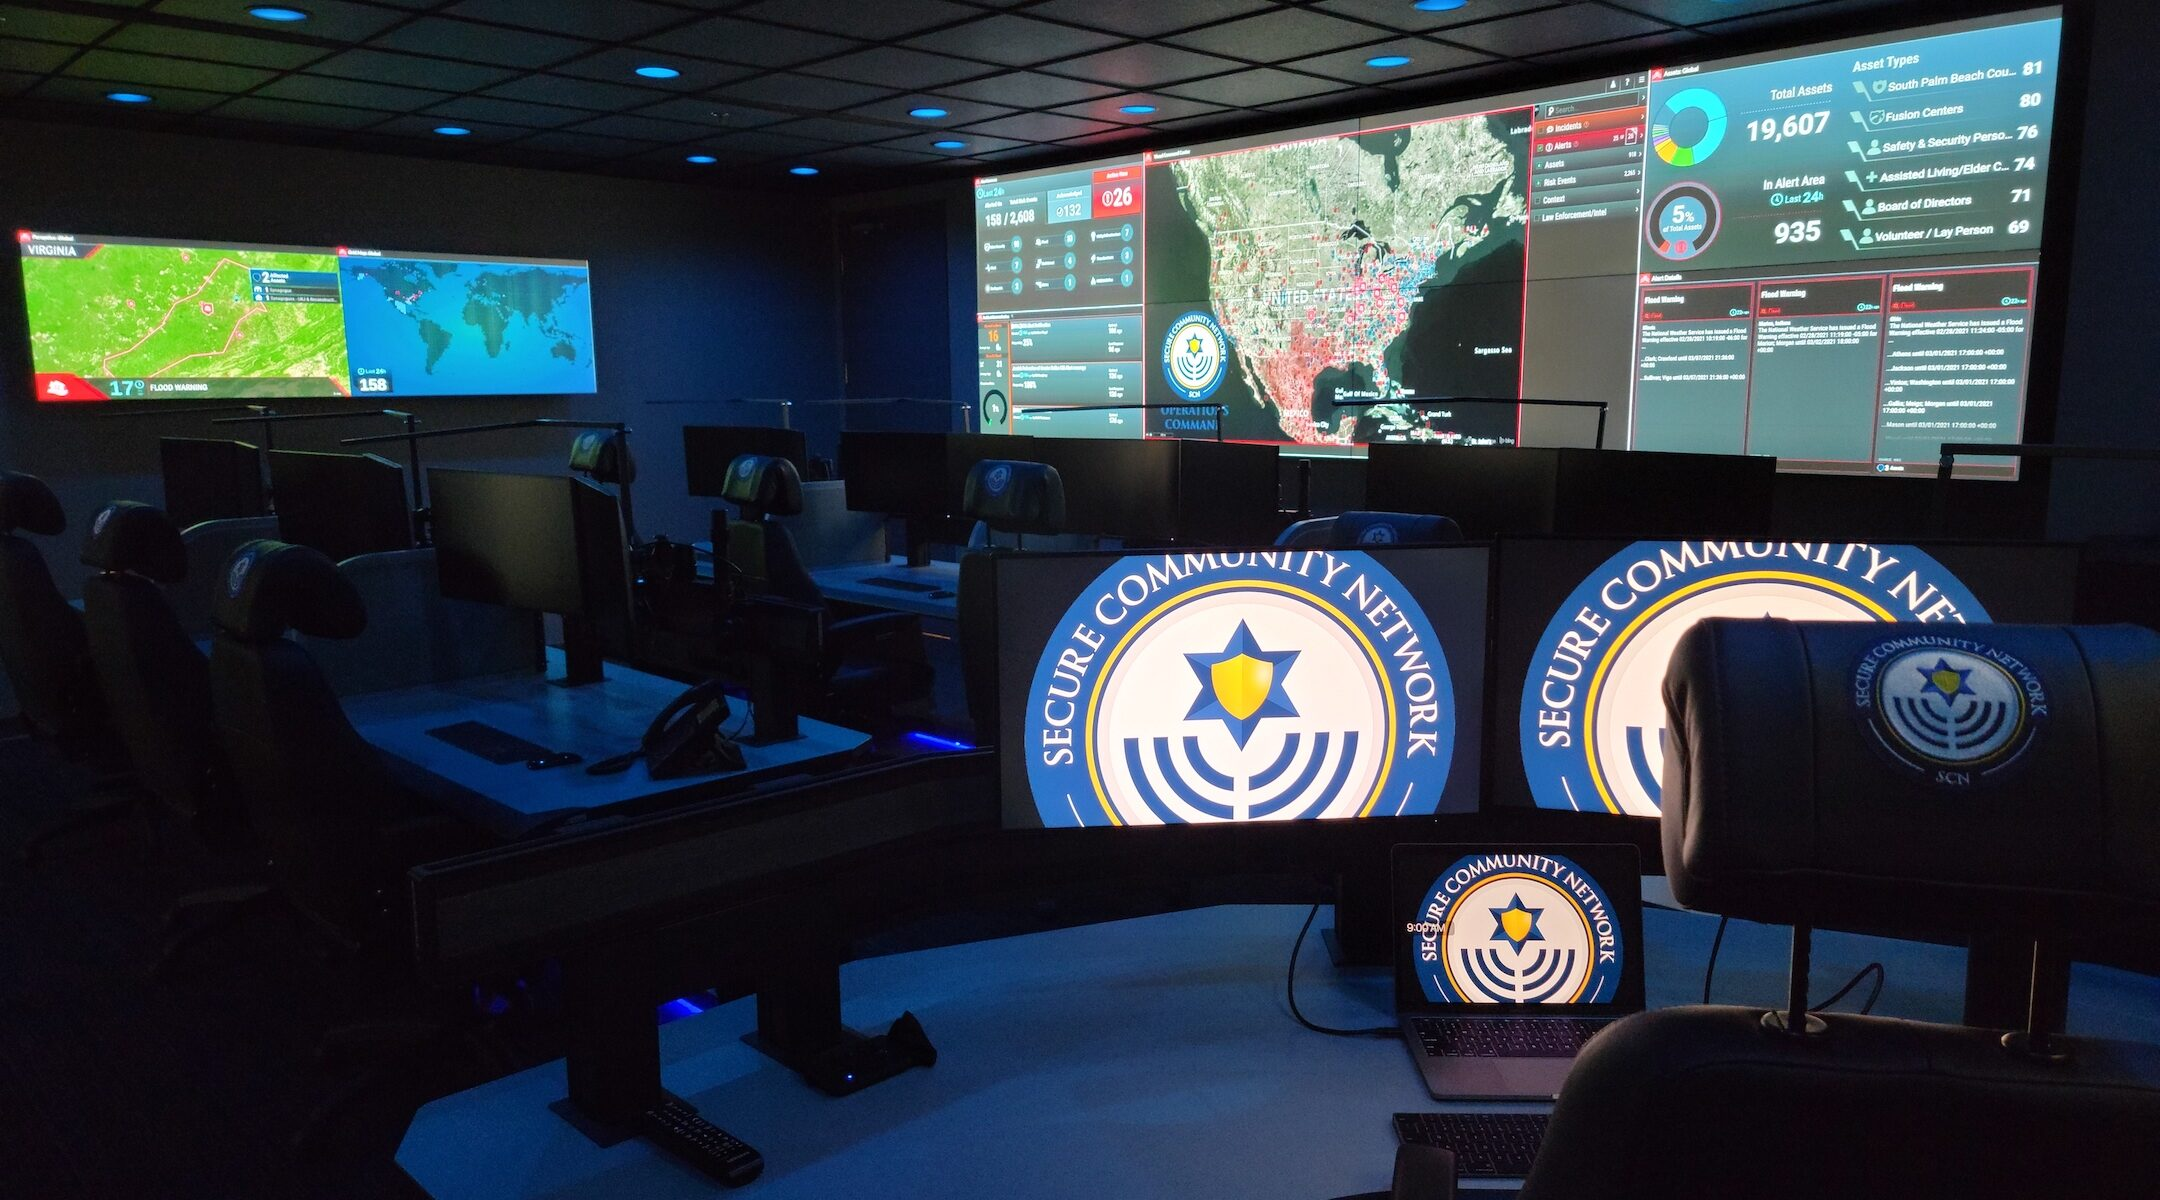 secure community network command center